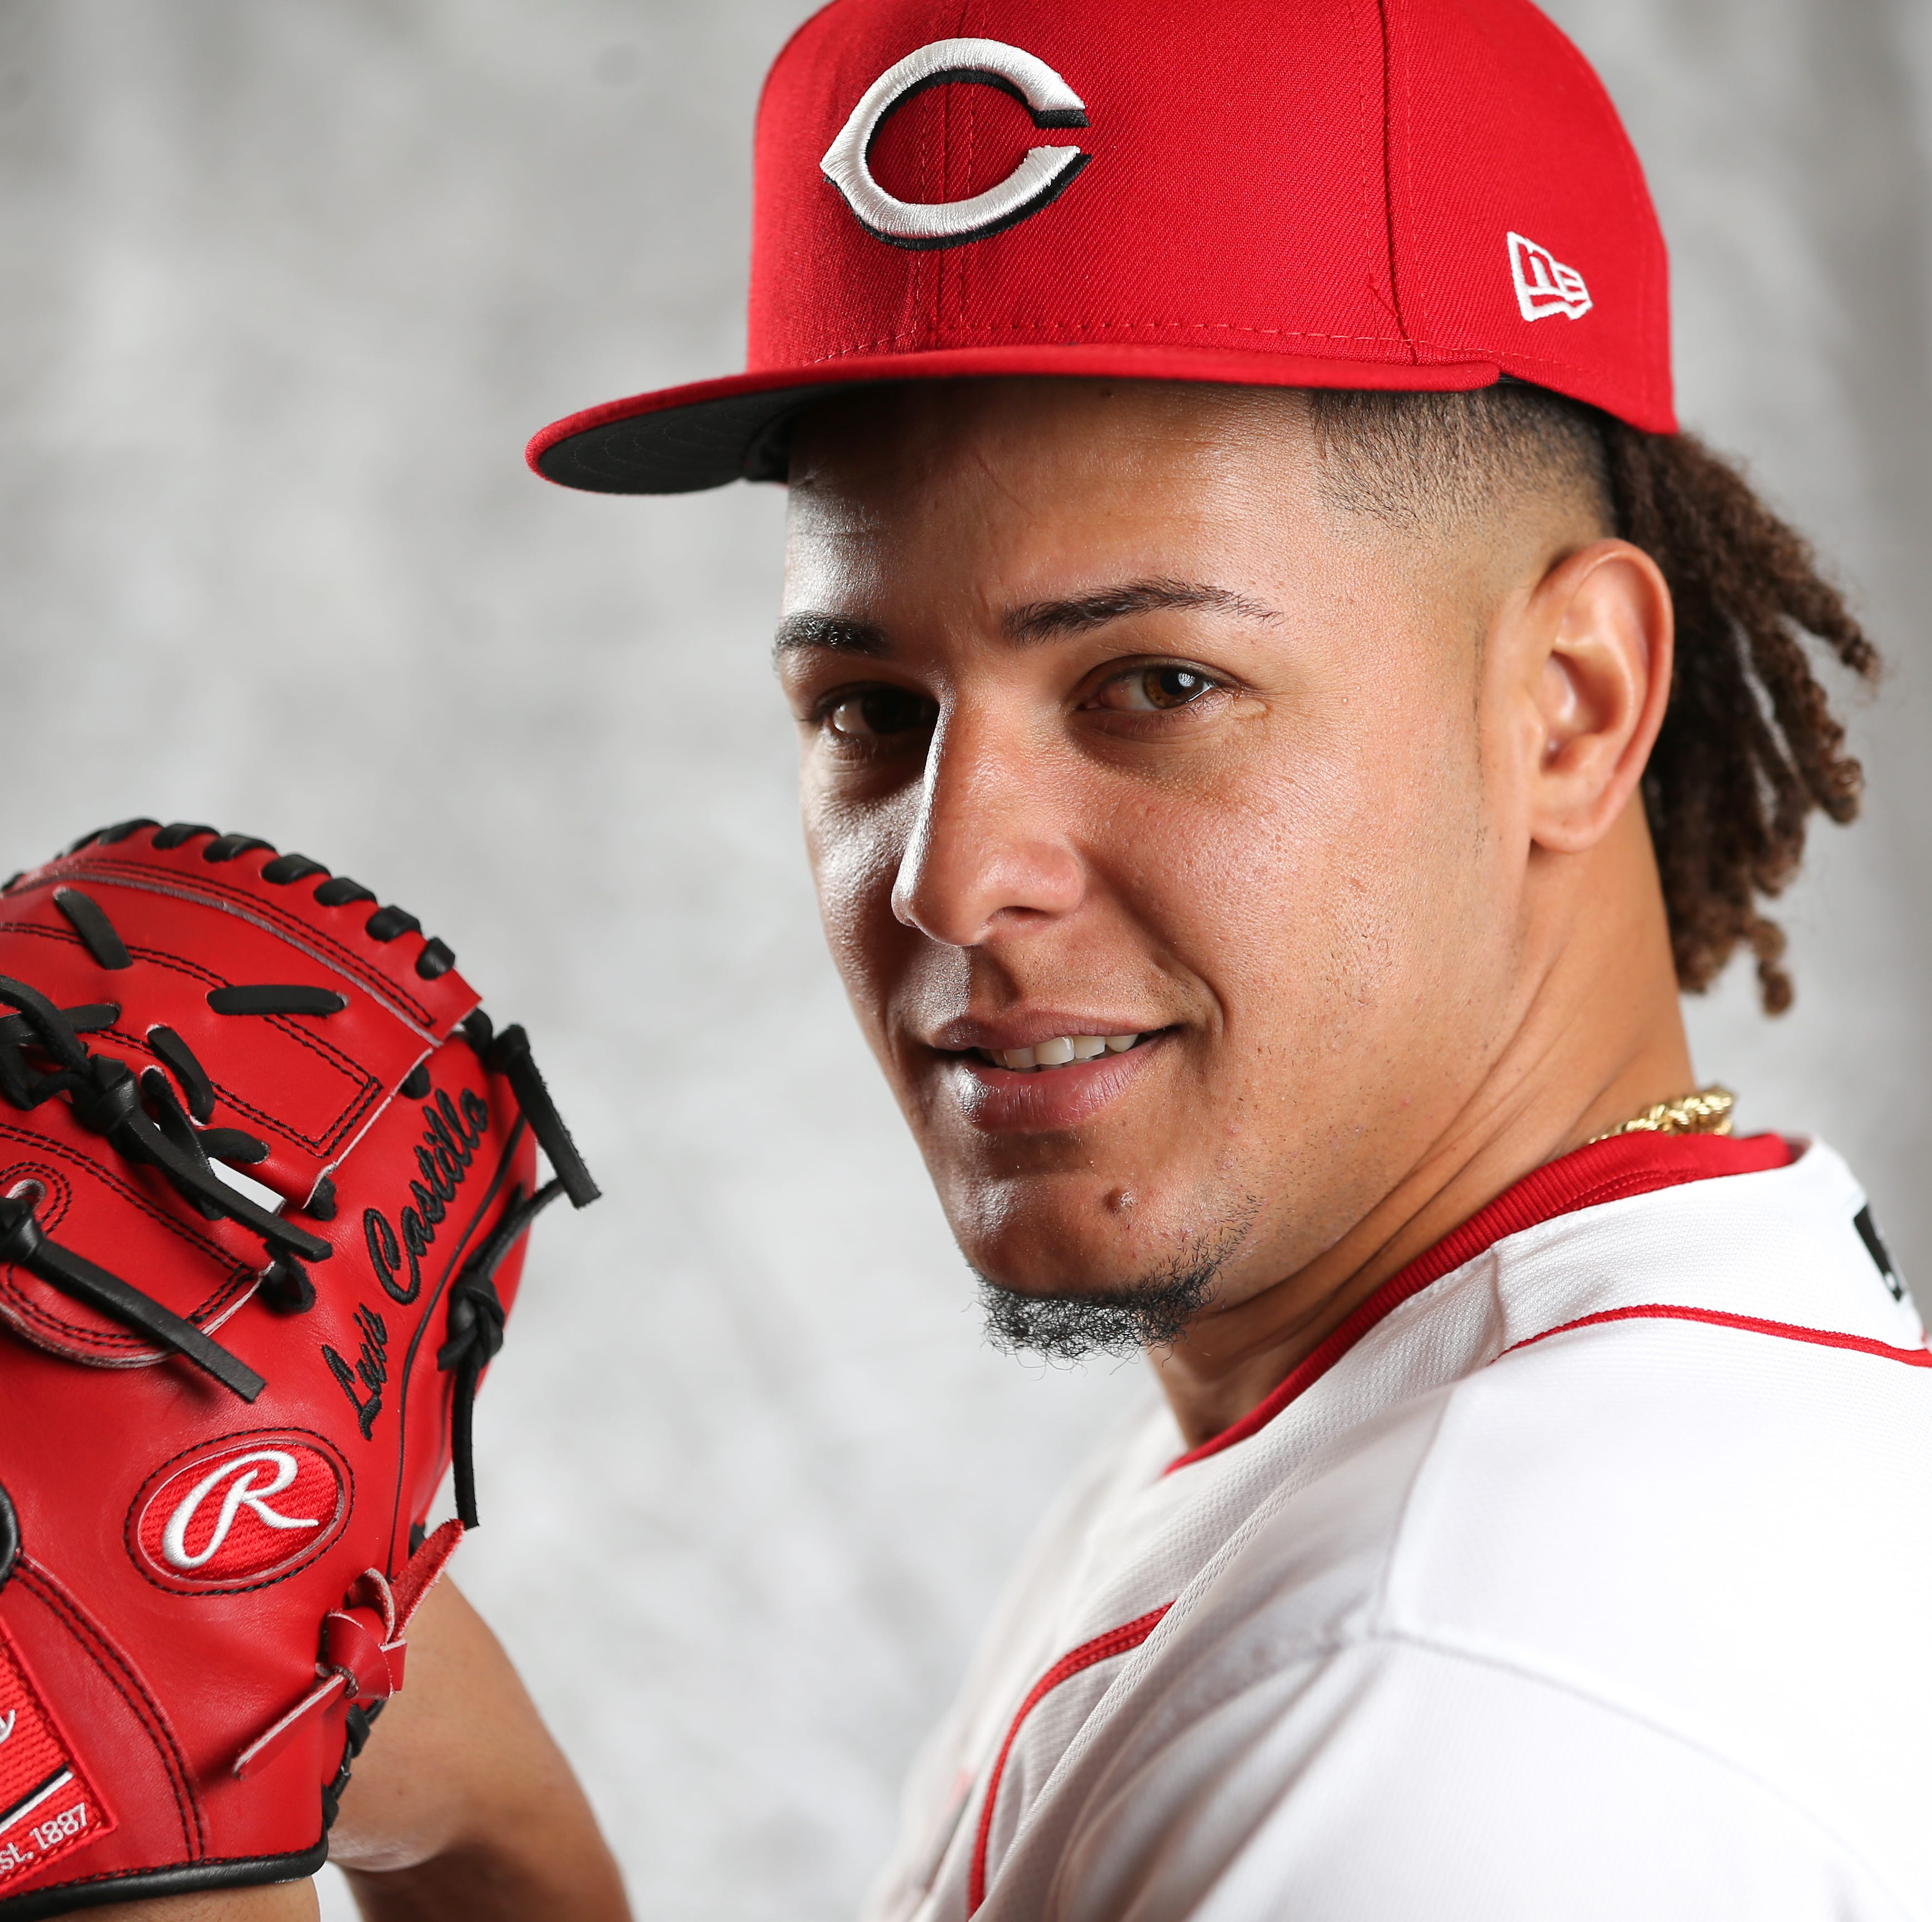 Luis Castillo named Cincinnati Reds Opening Day starter